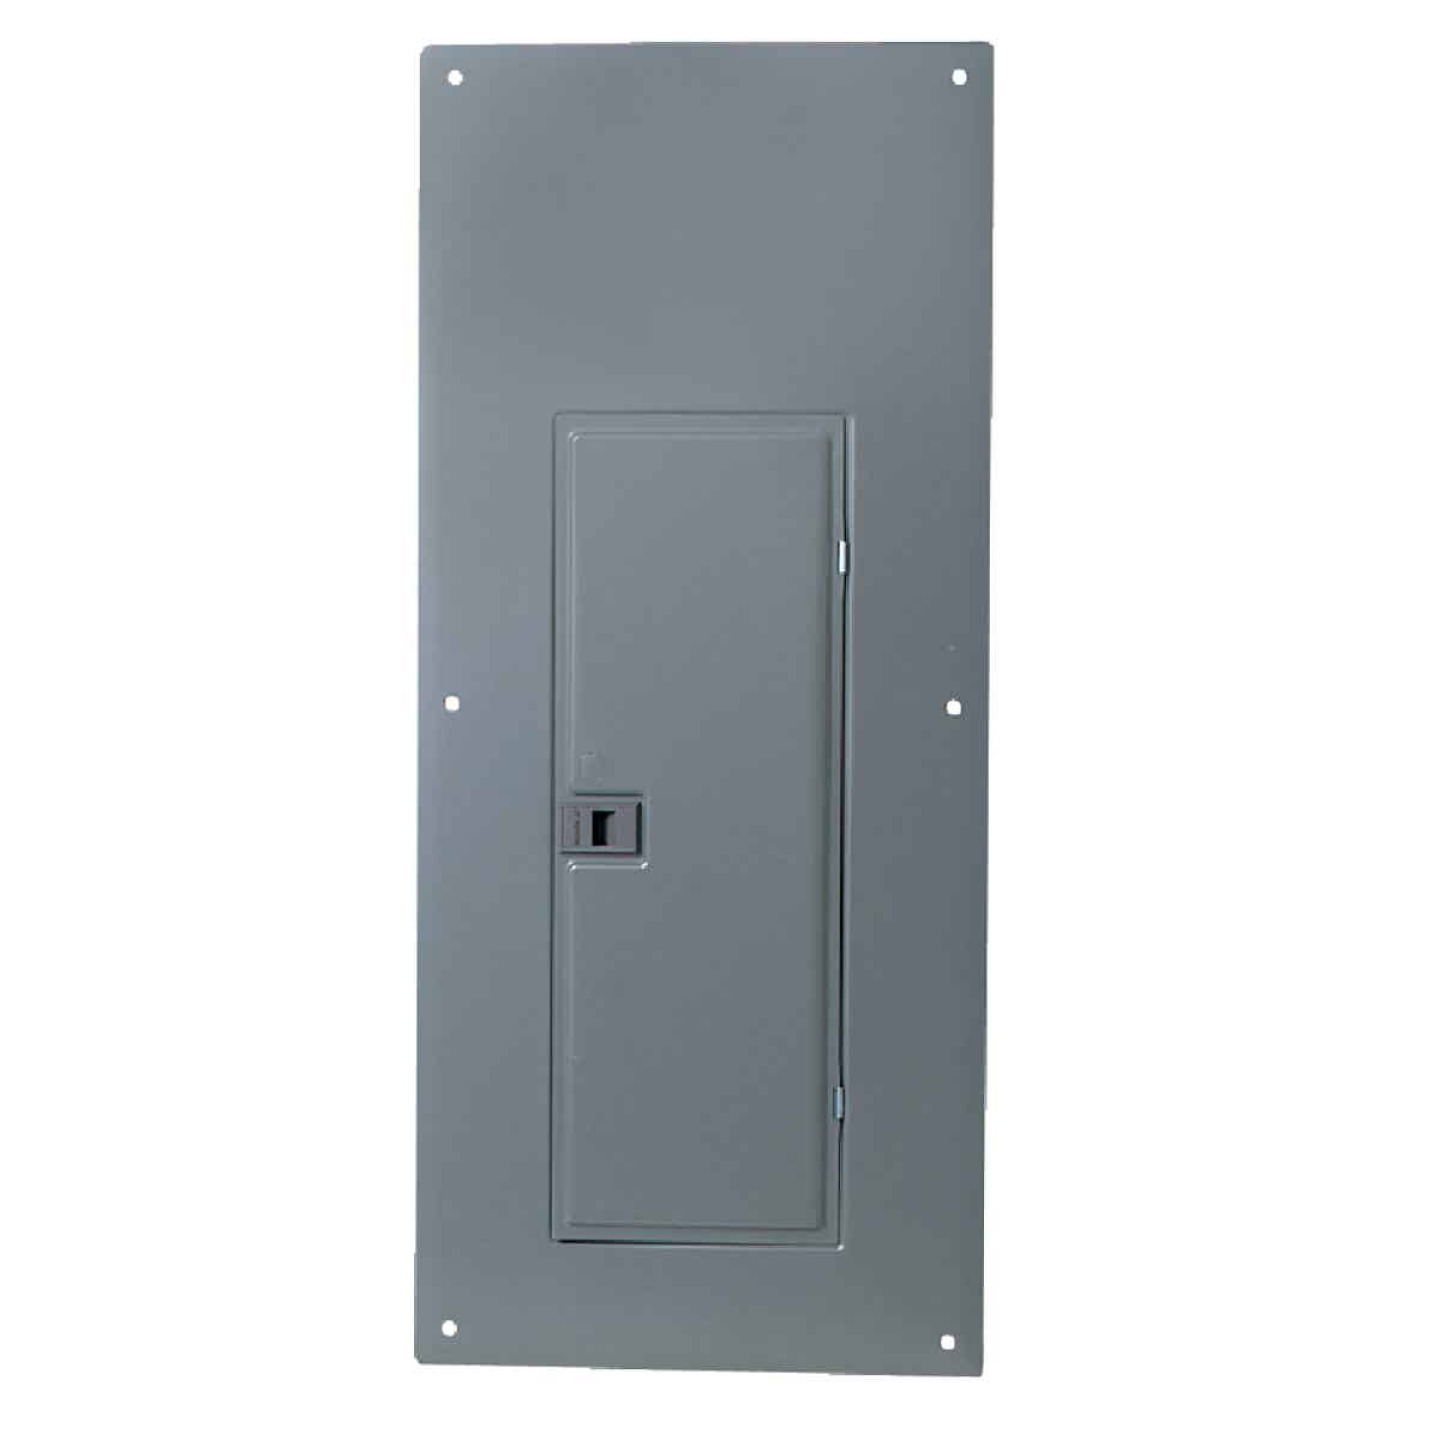 Square D Homeline 200A 30-Space 60-Circuit Indoor Main Breaker Plug-on Neutral Load Center Image 1